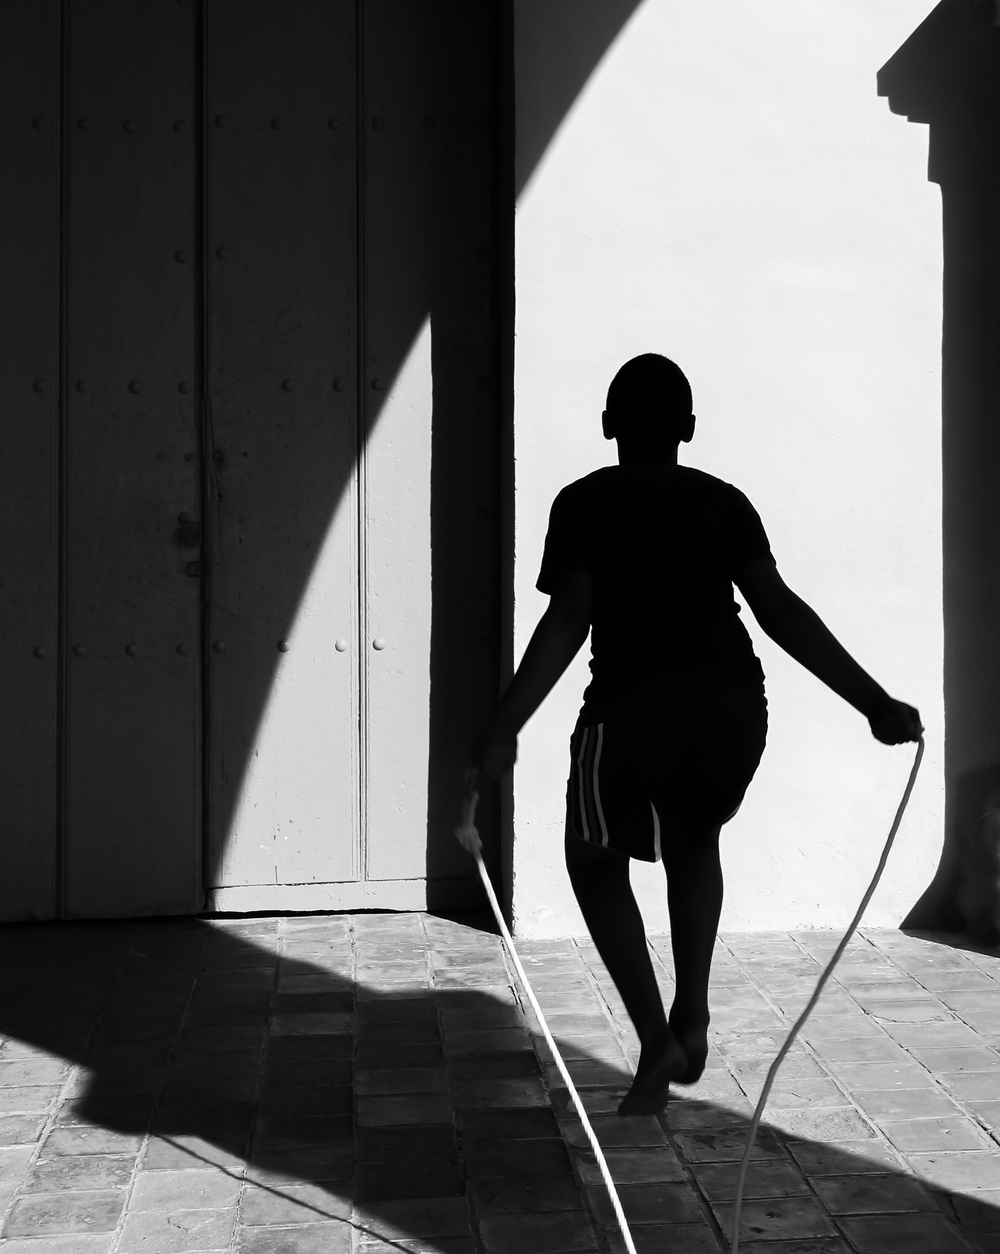 Jump Rope, by Eloisa Callender. All rights reserved.